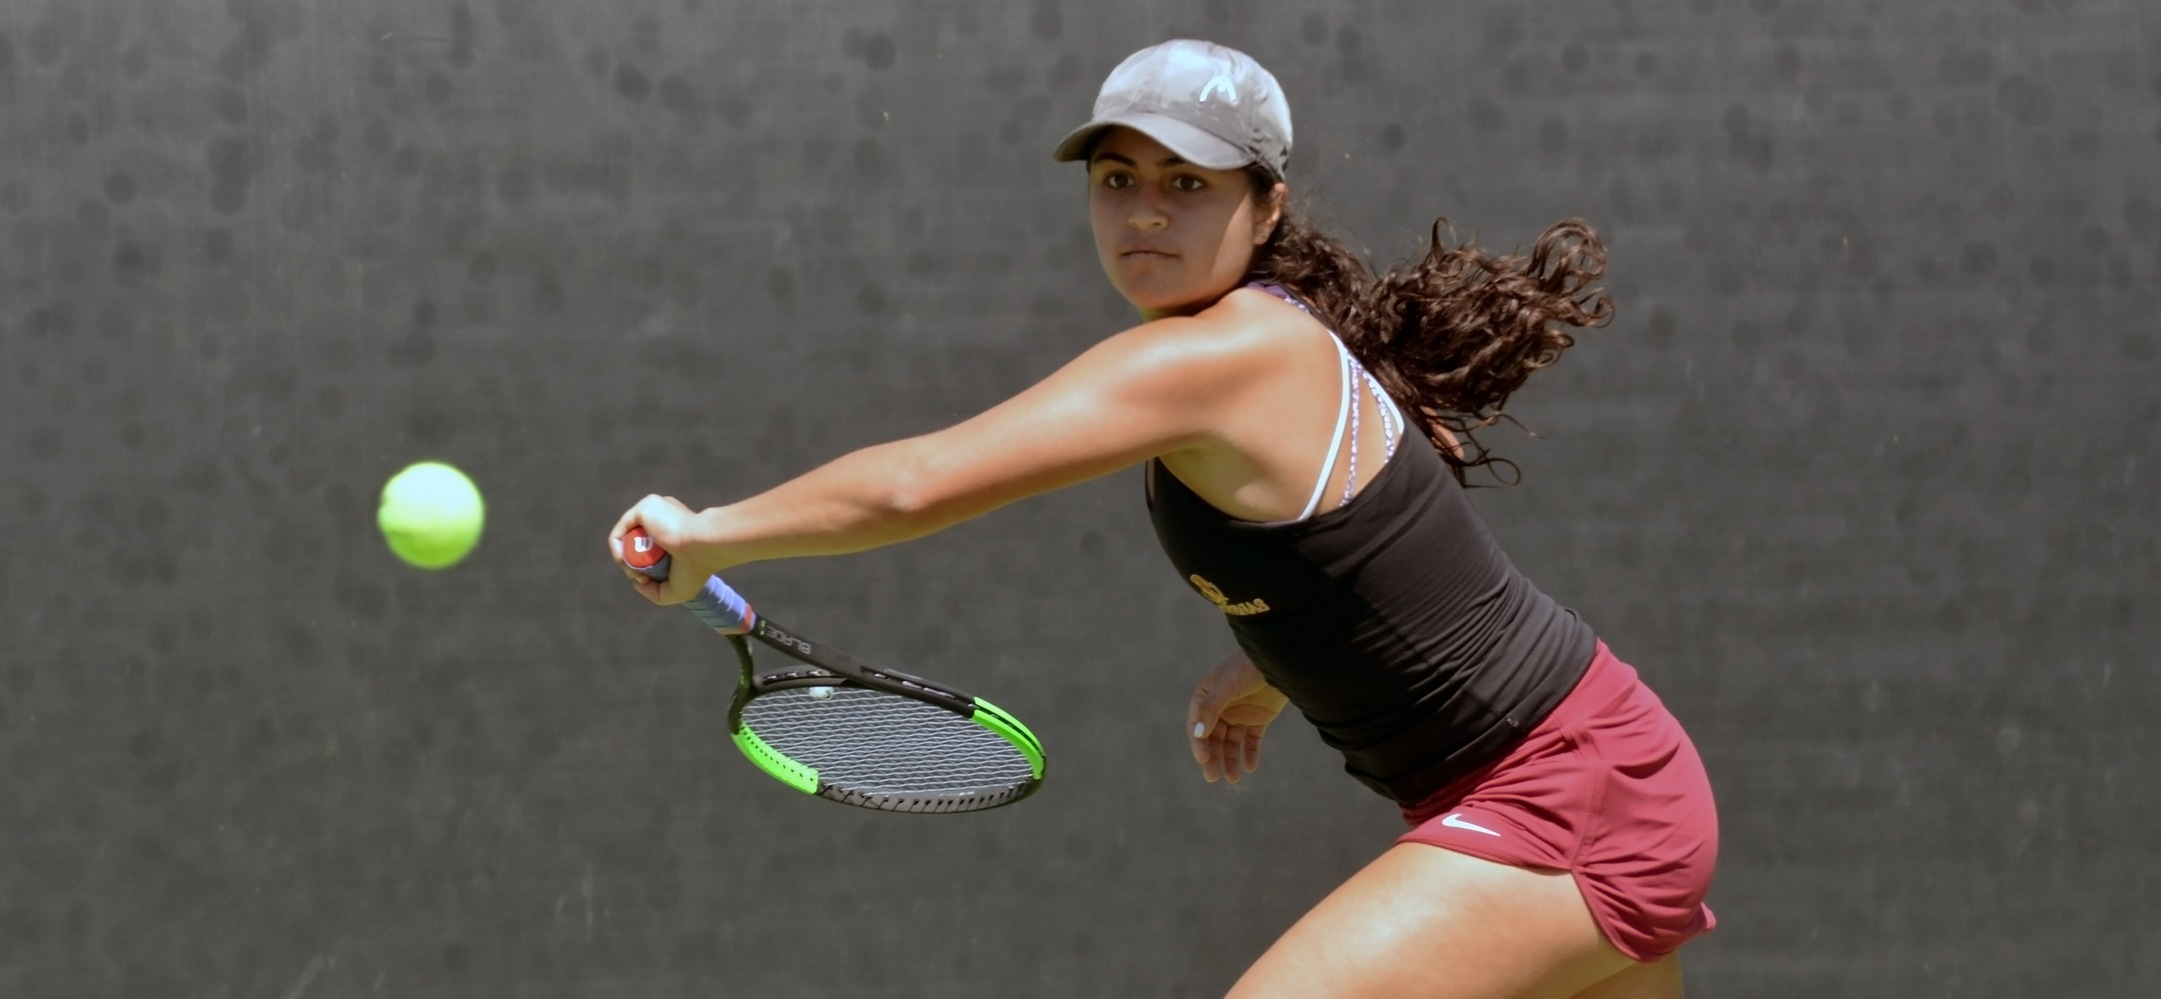 Sarah Bahsoun picked up an 8-1 win in doubles and a 6-1, 6-3 win in singles to sweep the day